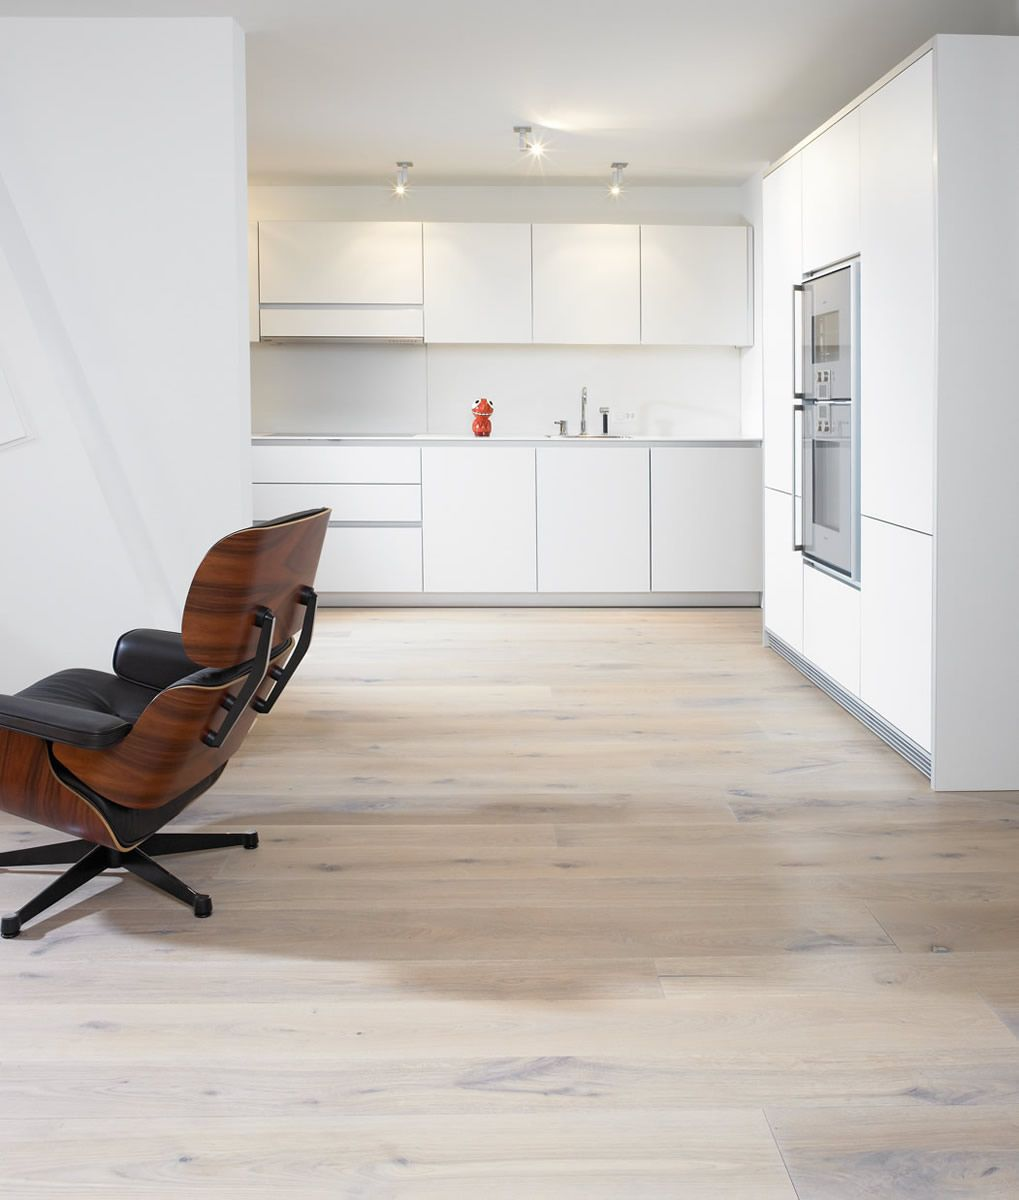 Kitchen Flooring Uk Country Oak Wide Plank Flooring Complements The Handleless White